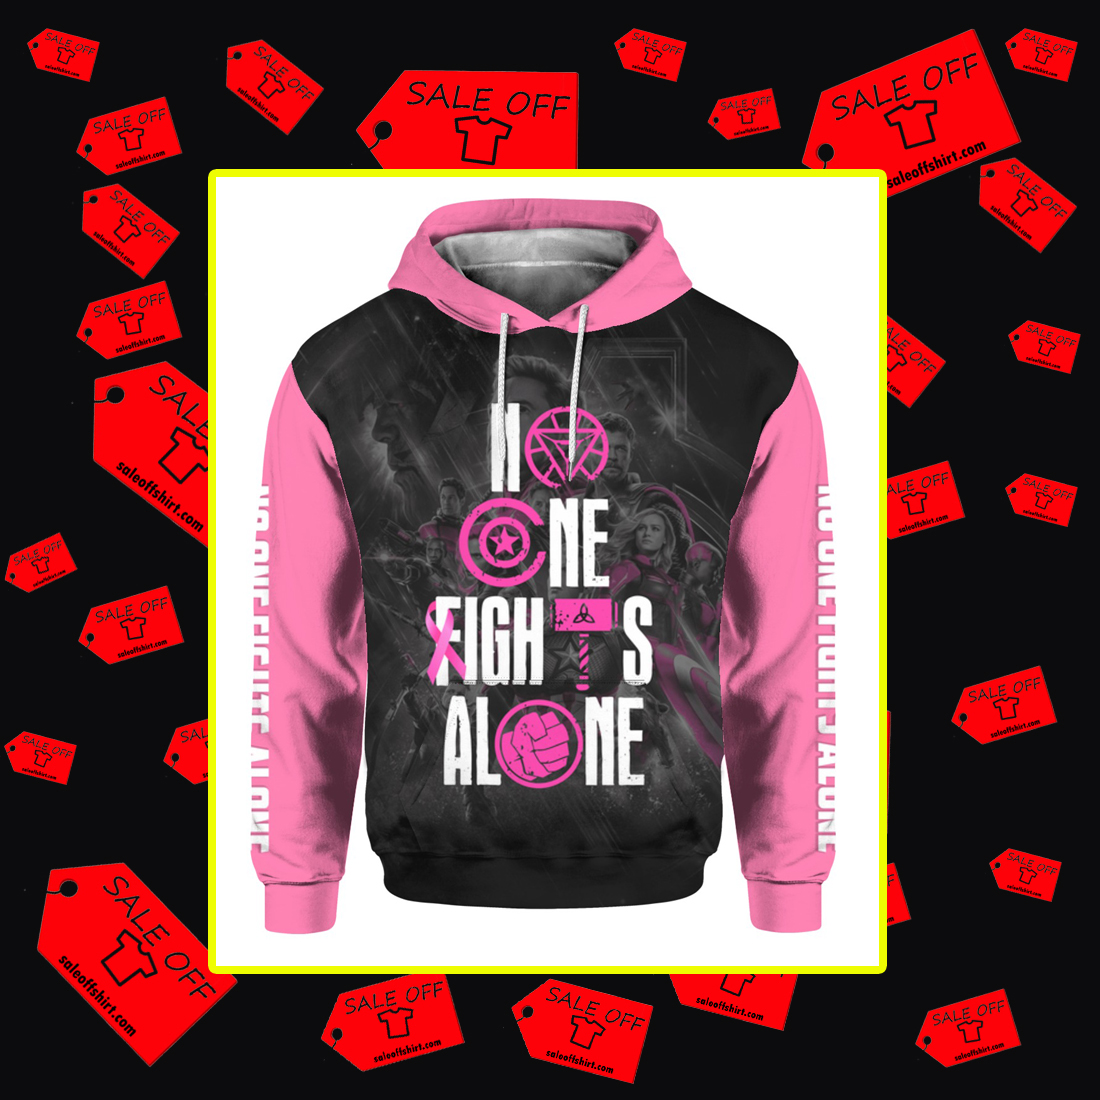 Avengers Endgame No one fights alone Breast cancer awareness 3d hoodie